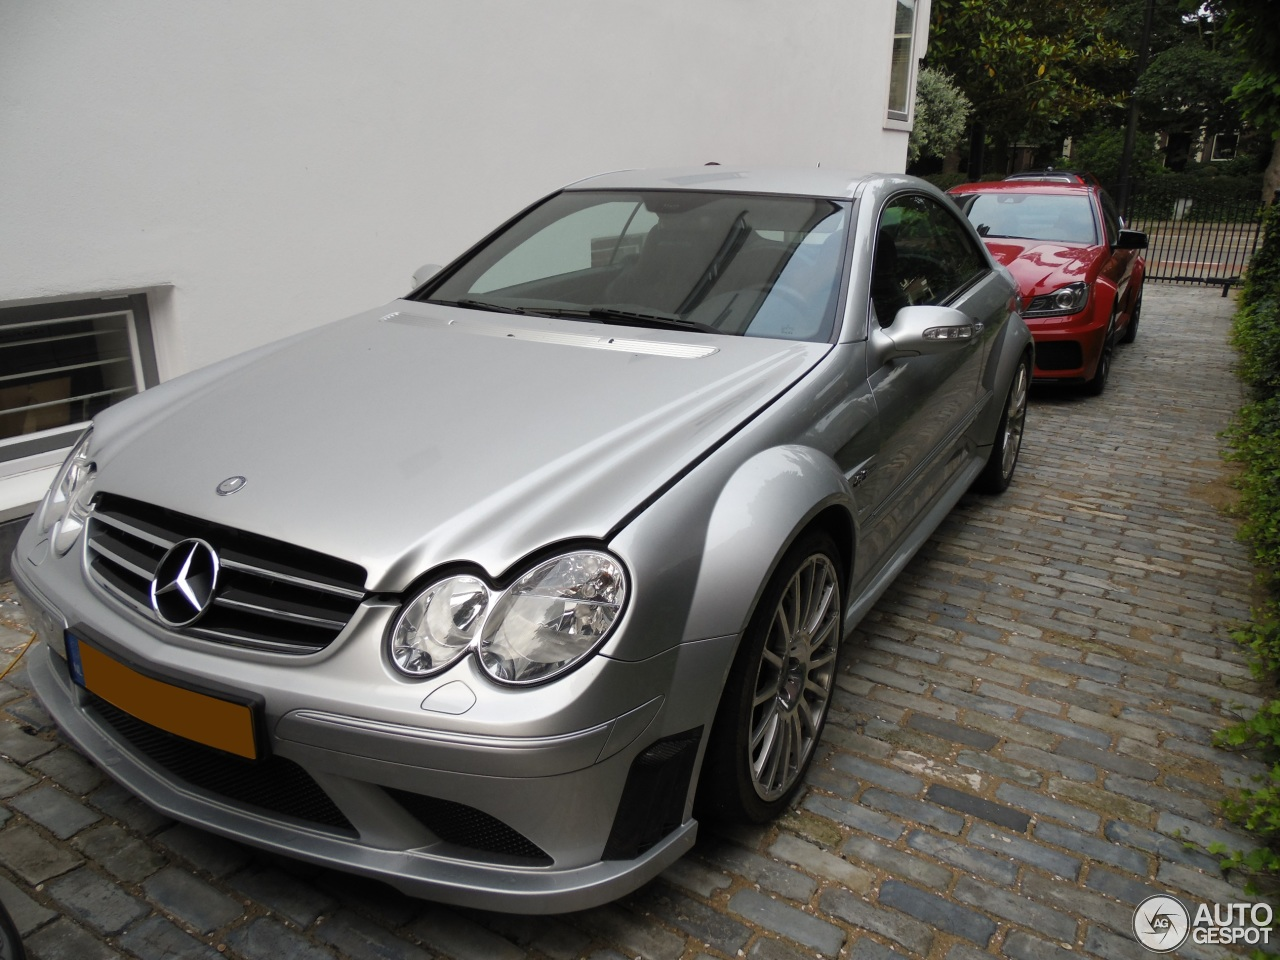 Mercedes benz clk 63 amg black series 20 august 2015 for Mercedes benz clk 63